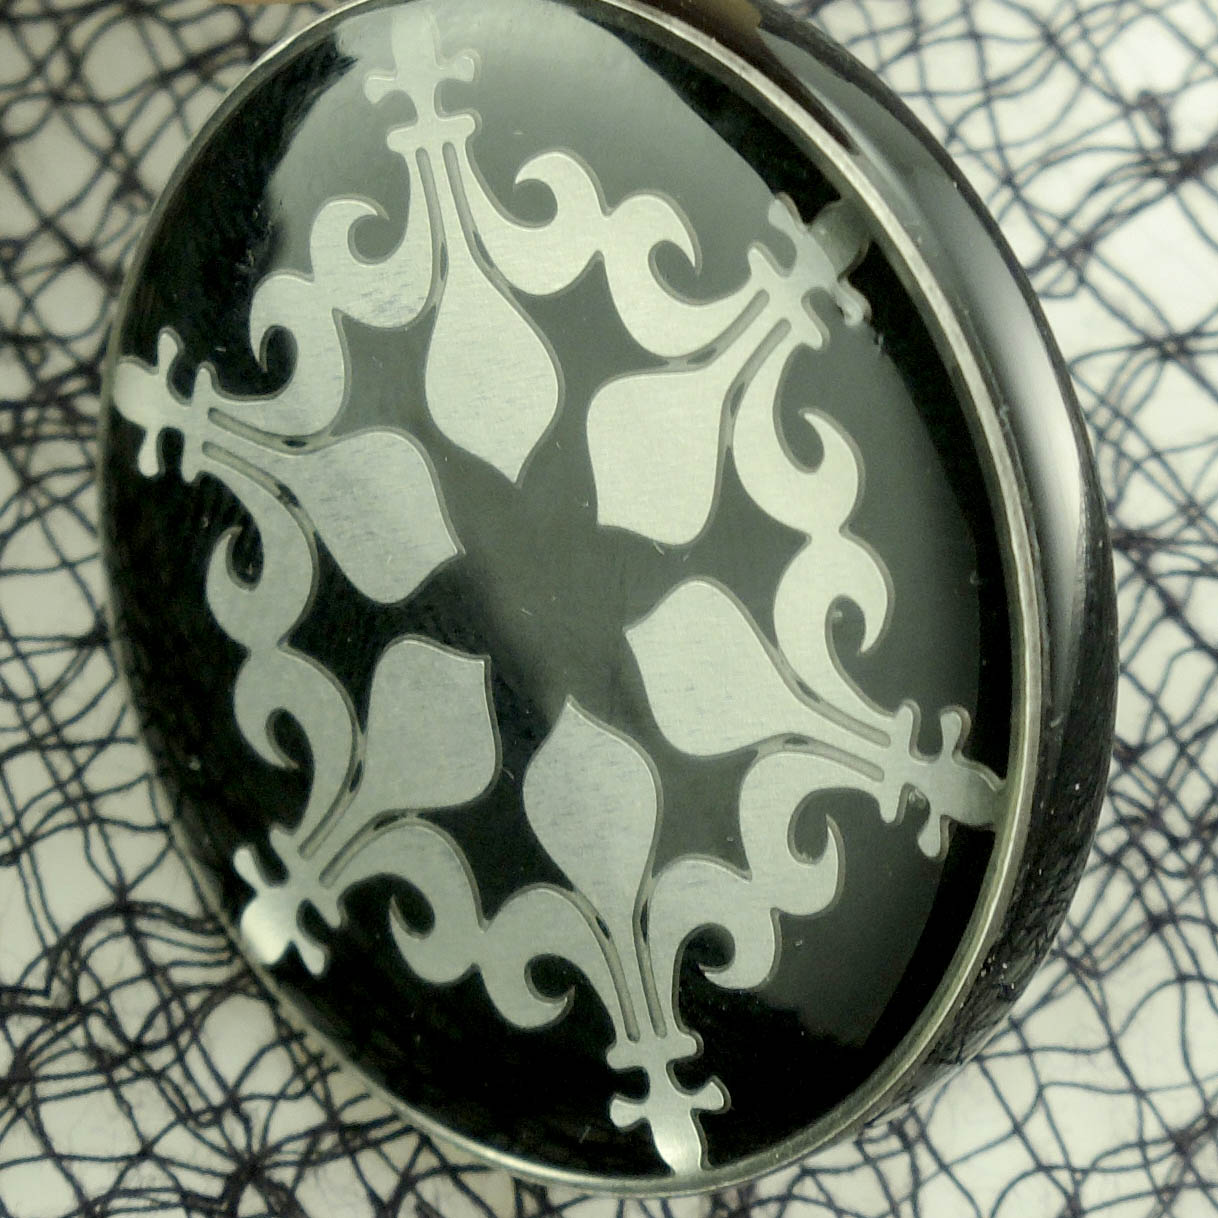 Fleur d'Lis Stainless Steel and Black Acrylic Pendant